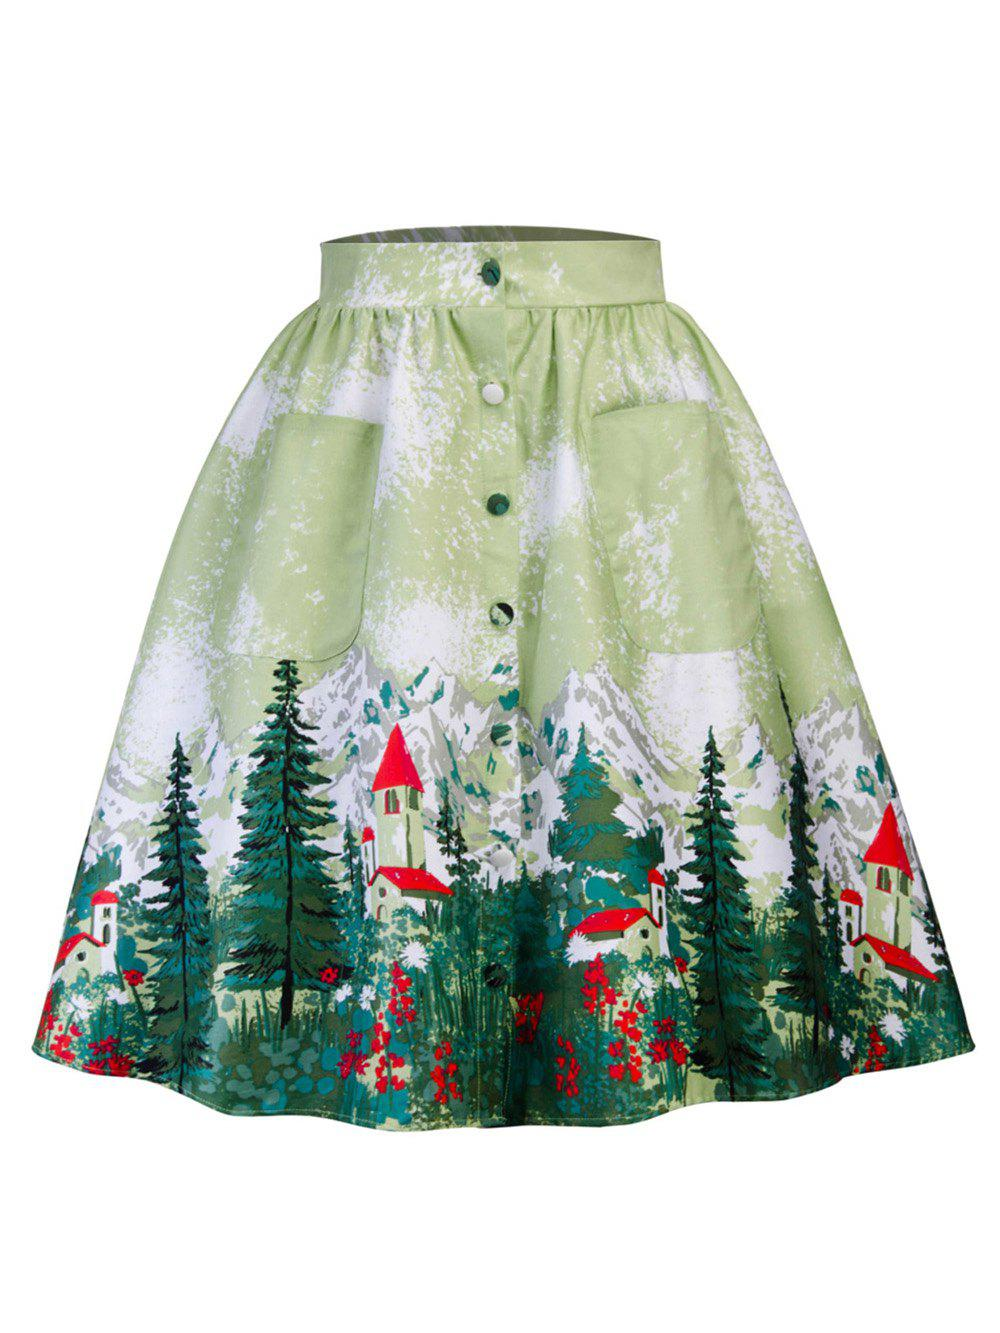 Outfit Hepburn Vintage Series Women Skirt Spring And Summer Trees Printing Button Fly Pocket Design Corset Retro Skirt